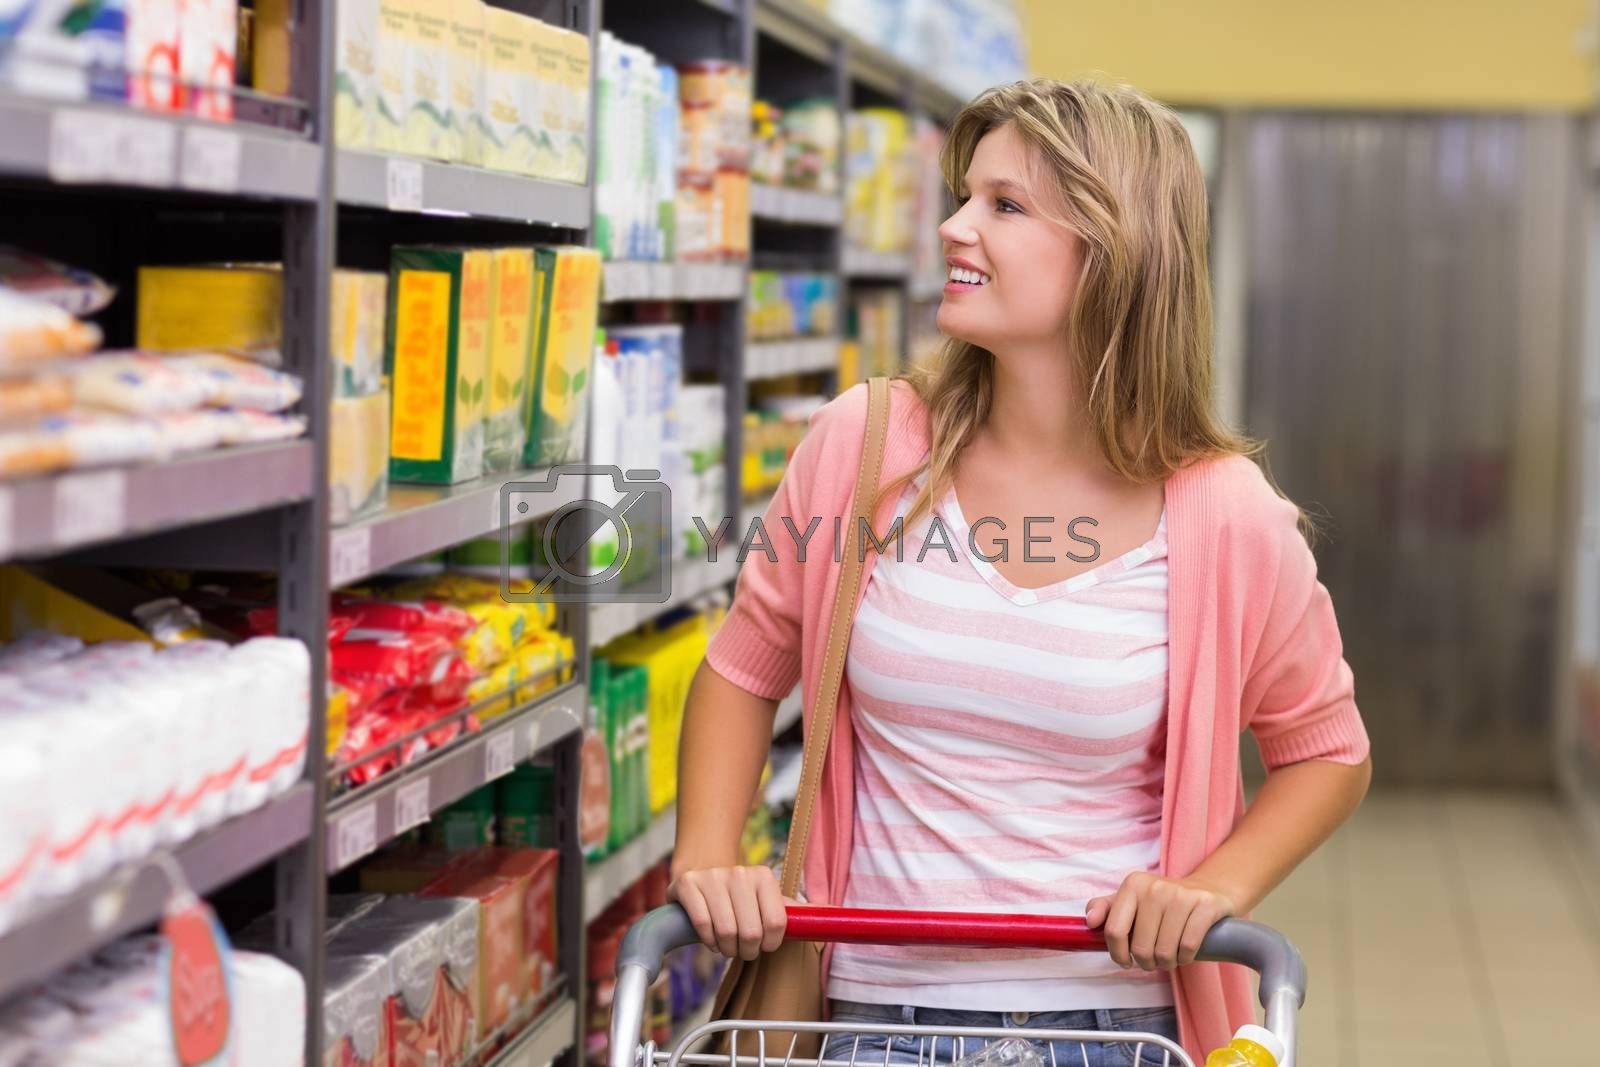 Royalty free image of Smiling pretty blonde woman looking at shelf and buying a products  by Wavebreakmedia